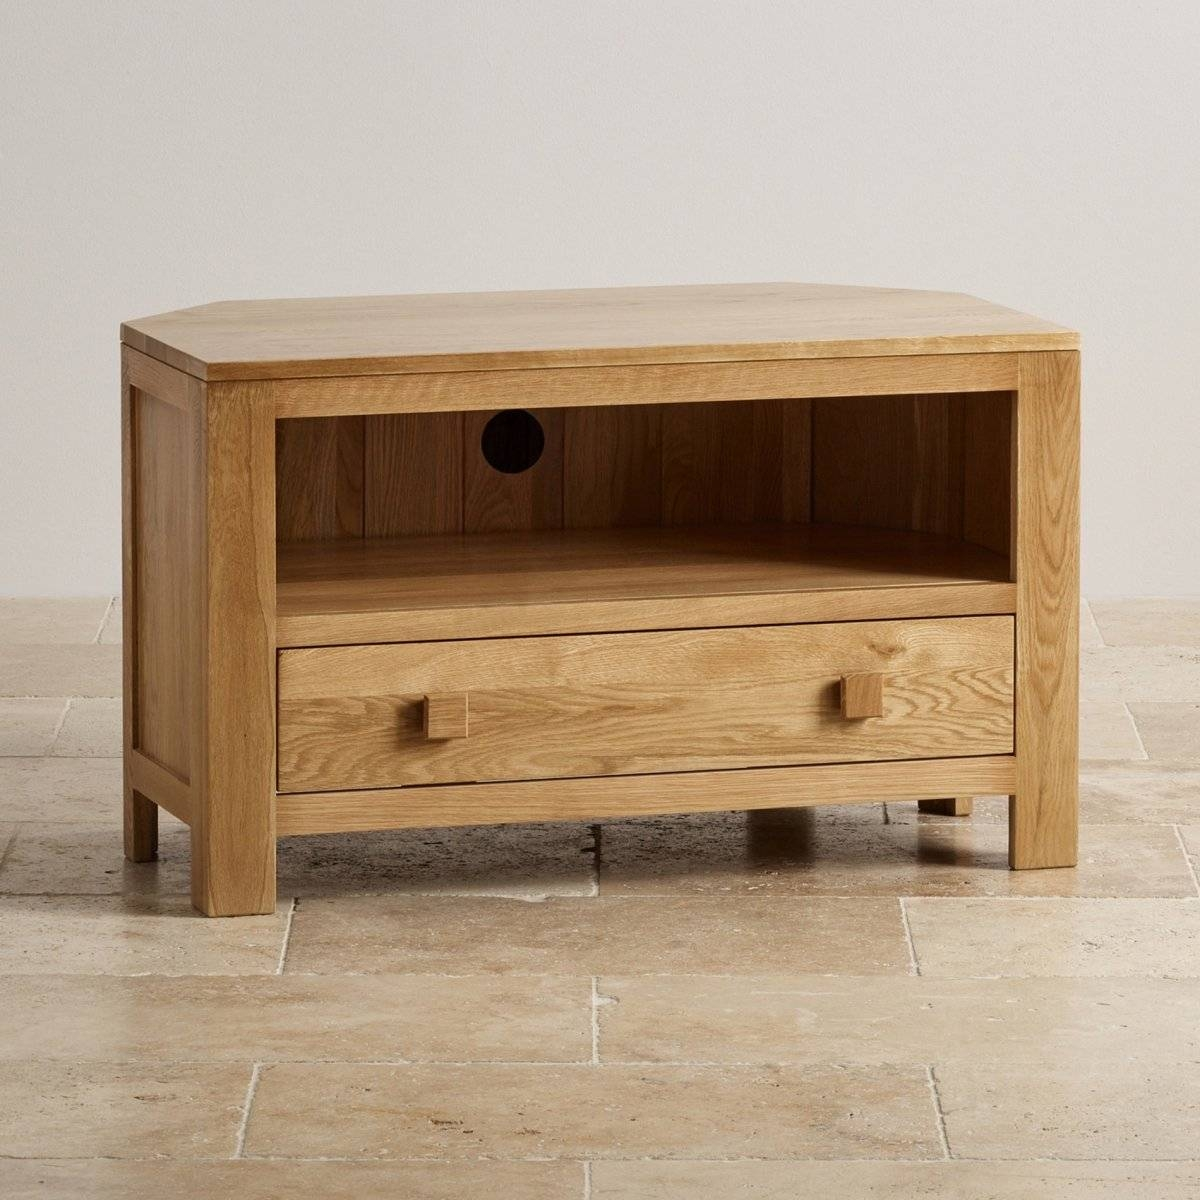 Oakdale Corner Tv Cabinet In Solid Oak | Oak Furniture Land regarding Hardwood Tv Stands (Image 7 of 15)